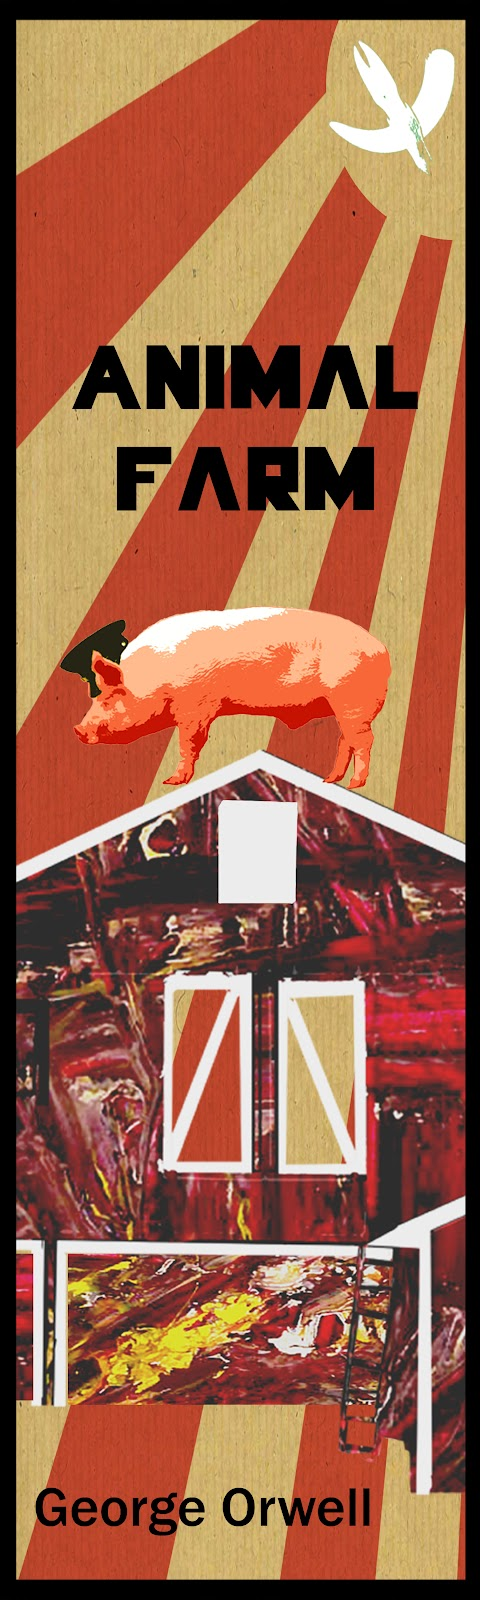 essay on propaganda in animal farm Animal farm summary | see more ideas about farm houses, boxer dogs and dieren.